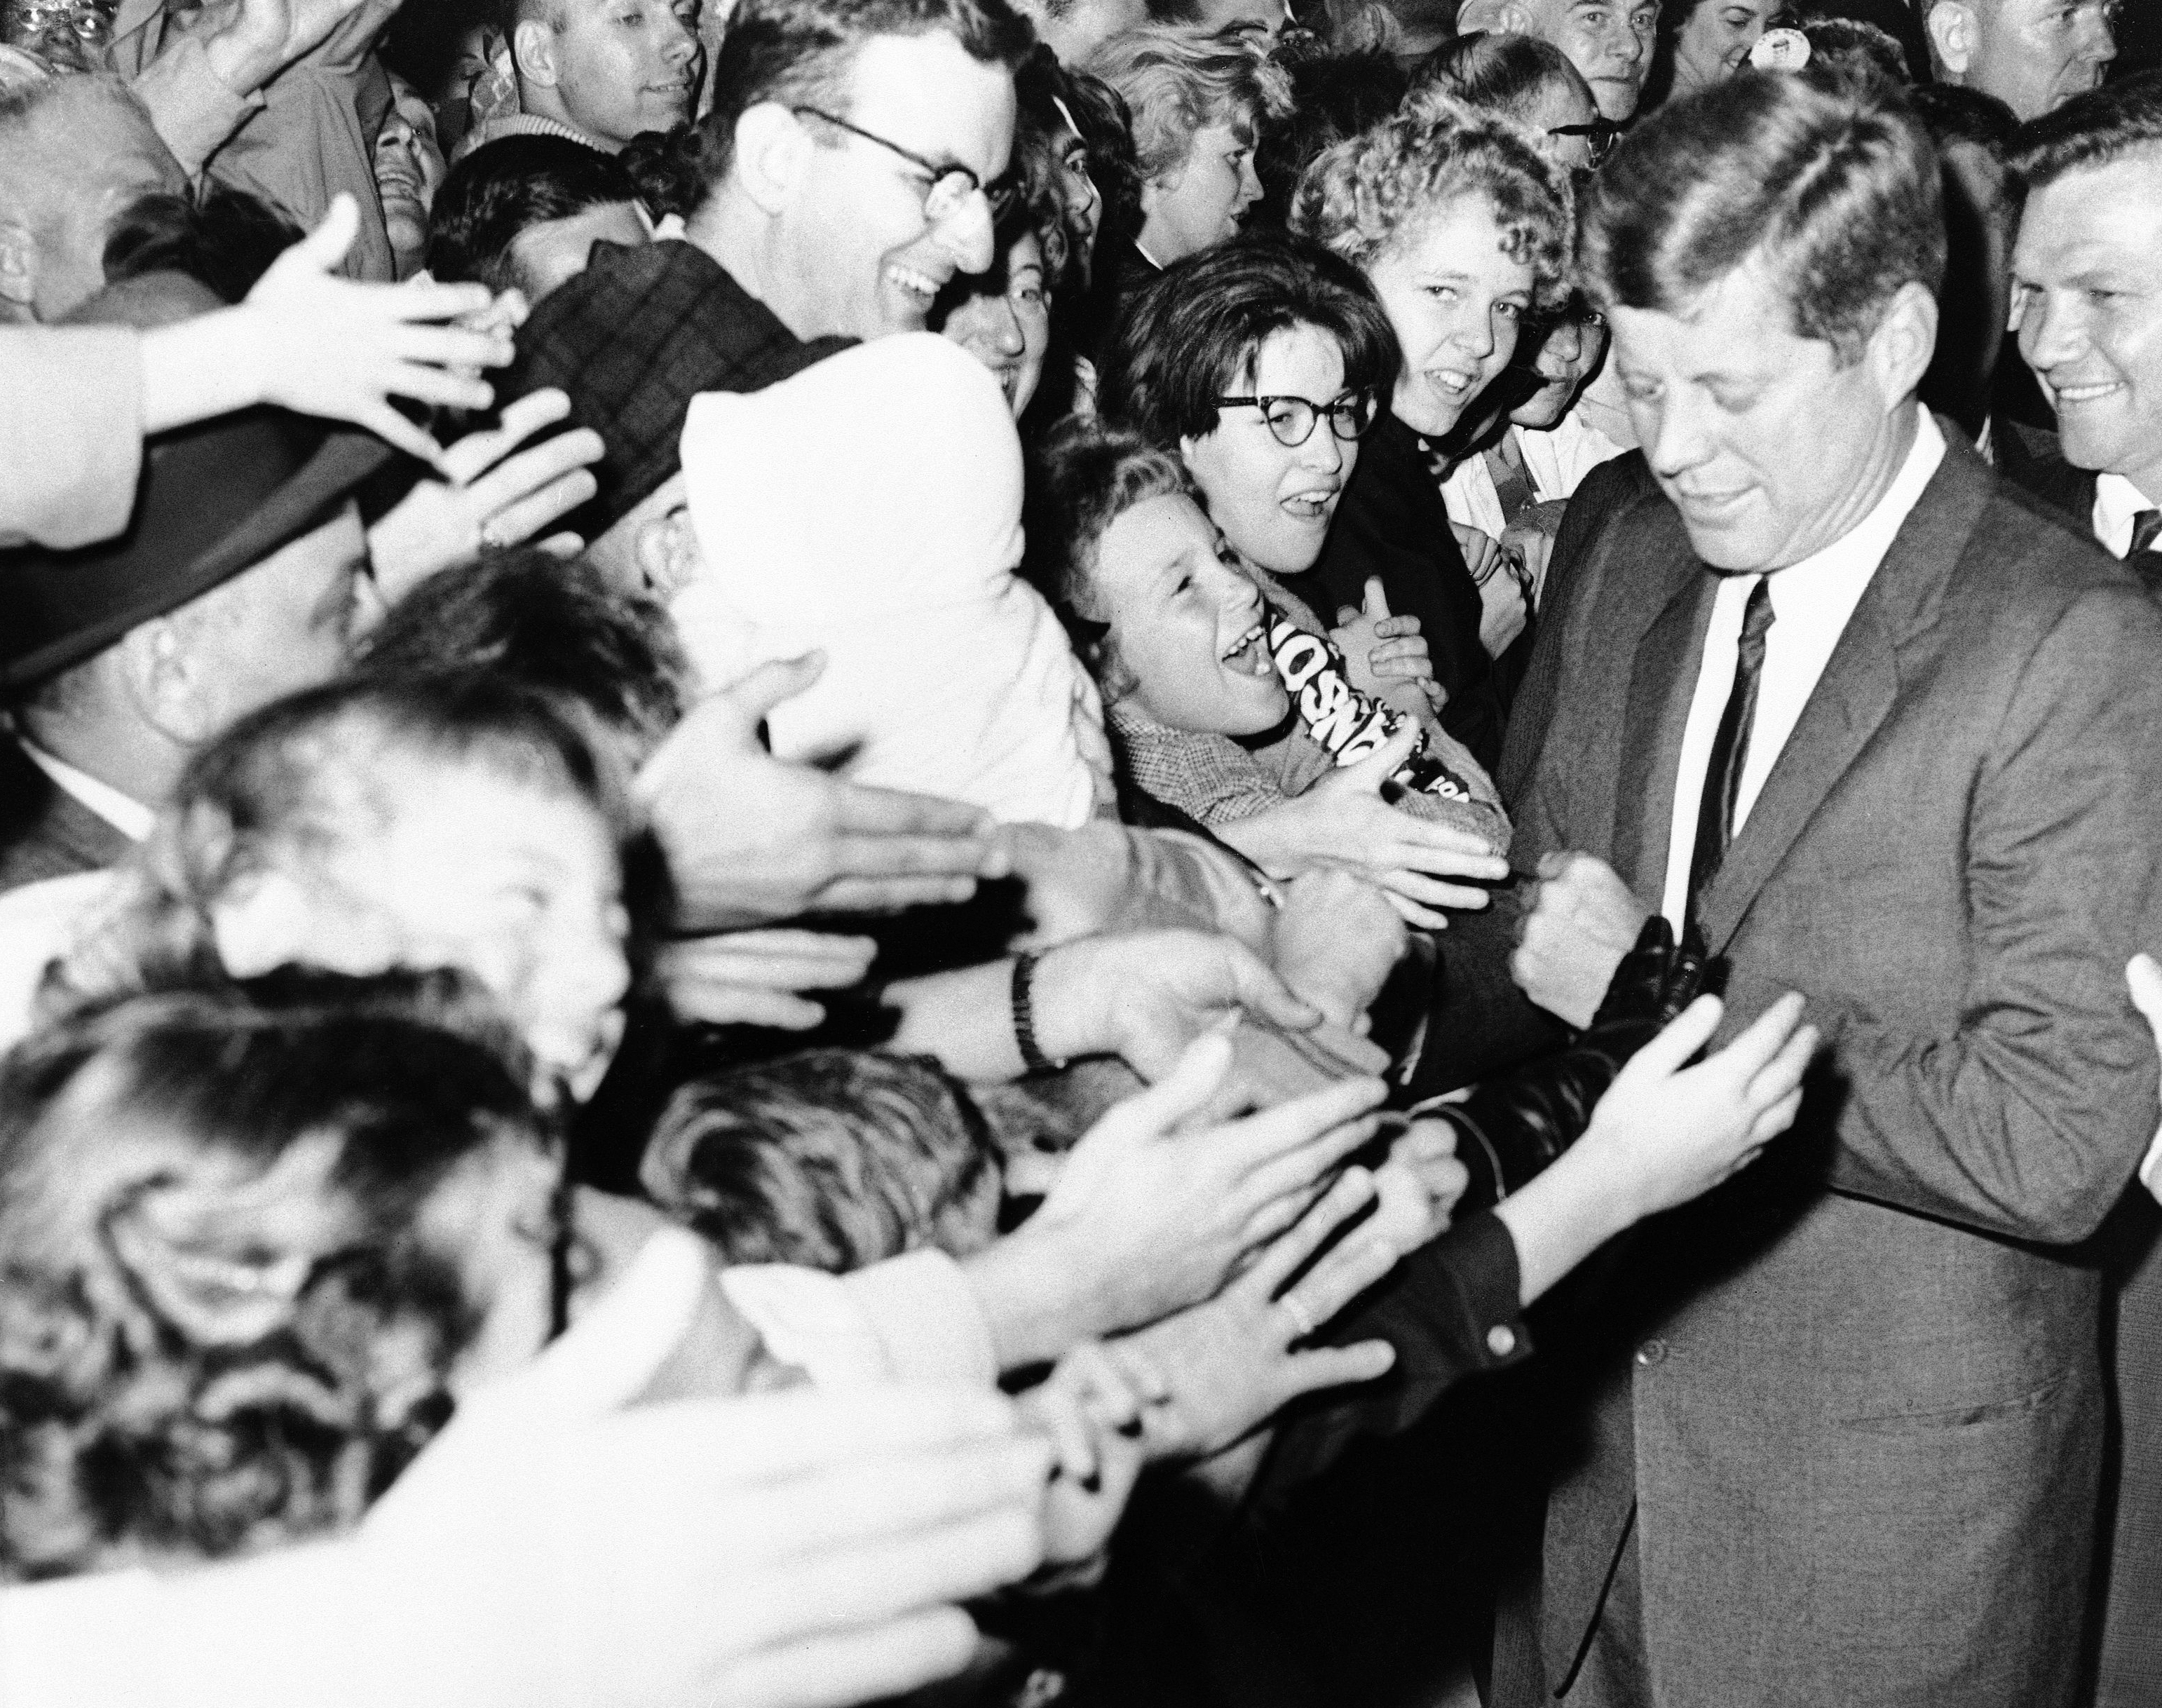 <div class='meta'><div class='origin-logo' data-origin='none'></div><span class='caption-text' data-credit='AP'>President John Kennedy receives an enthusiastic reception after his arrival at Detroit's Metropolitan airport Oct. 5, 1962.</span></div>